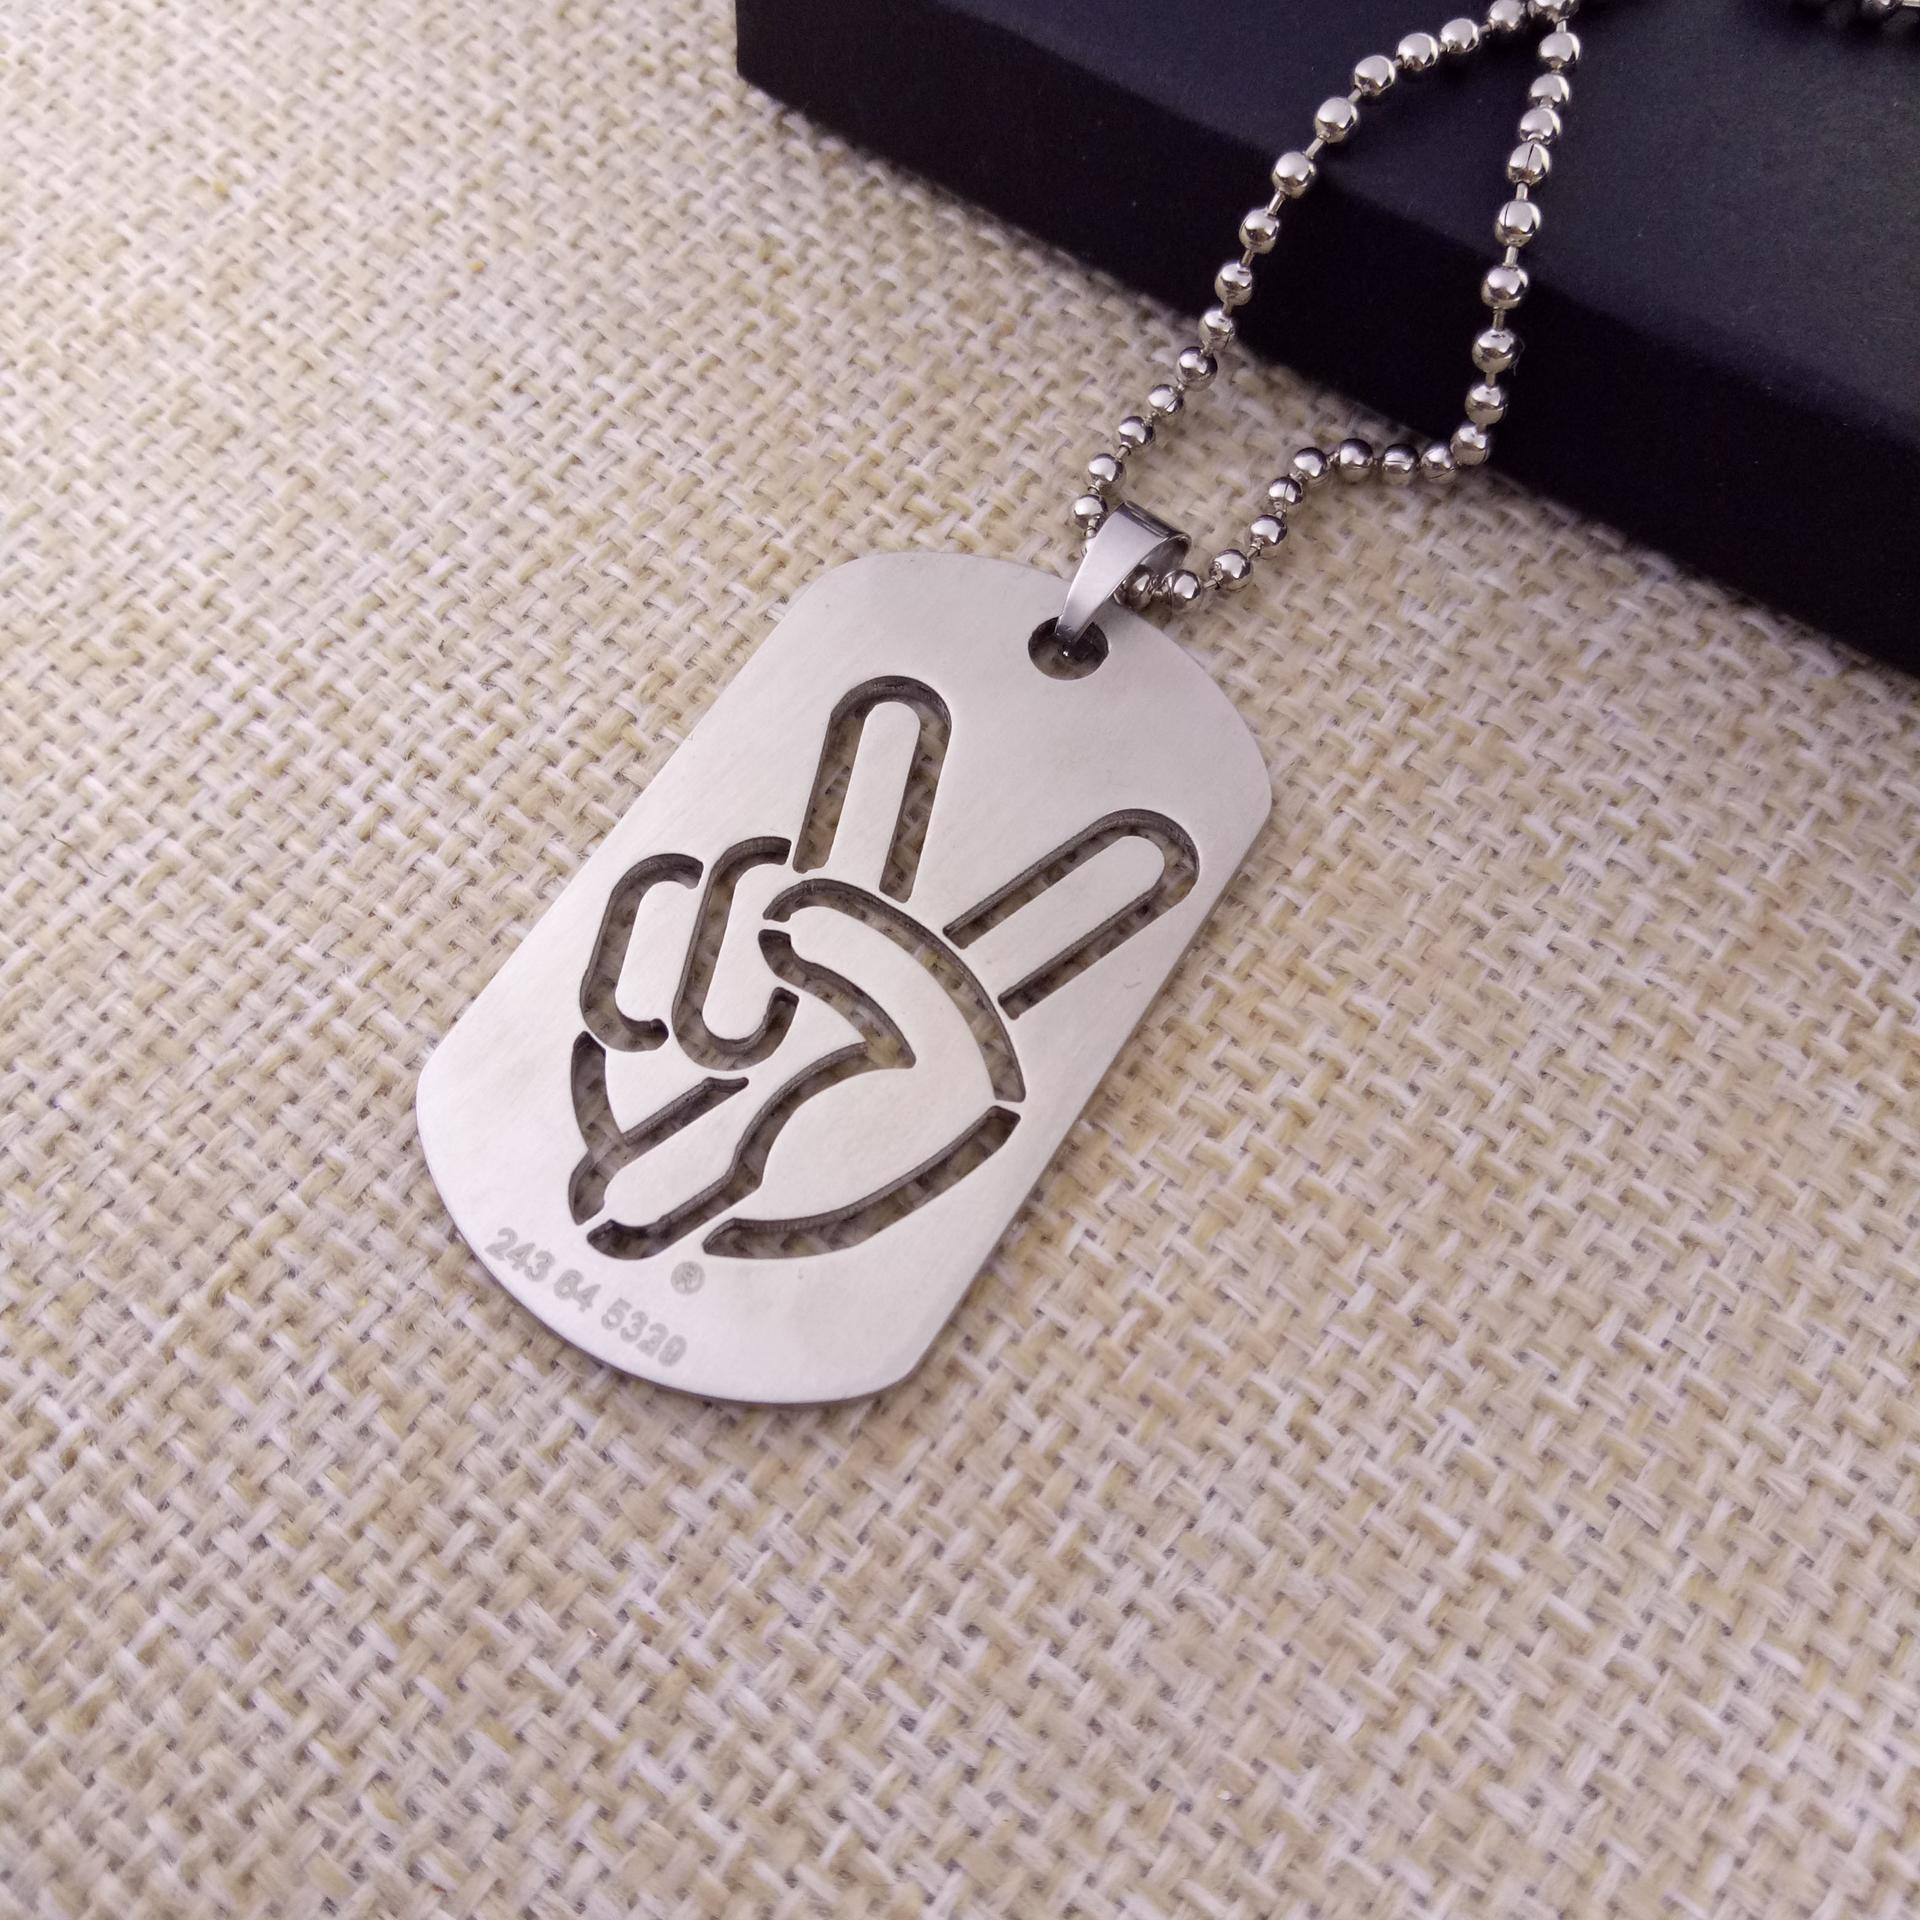 NO MOQ stainless steel military dog tags with cut out logo